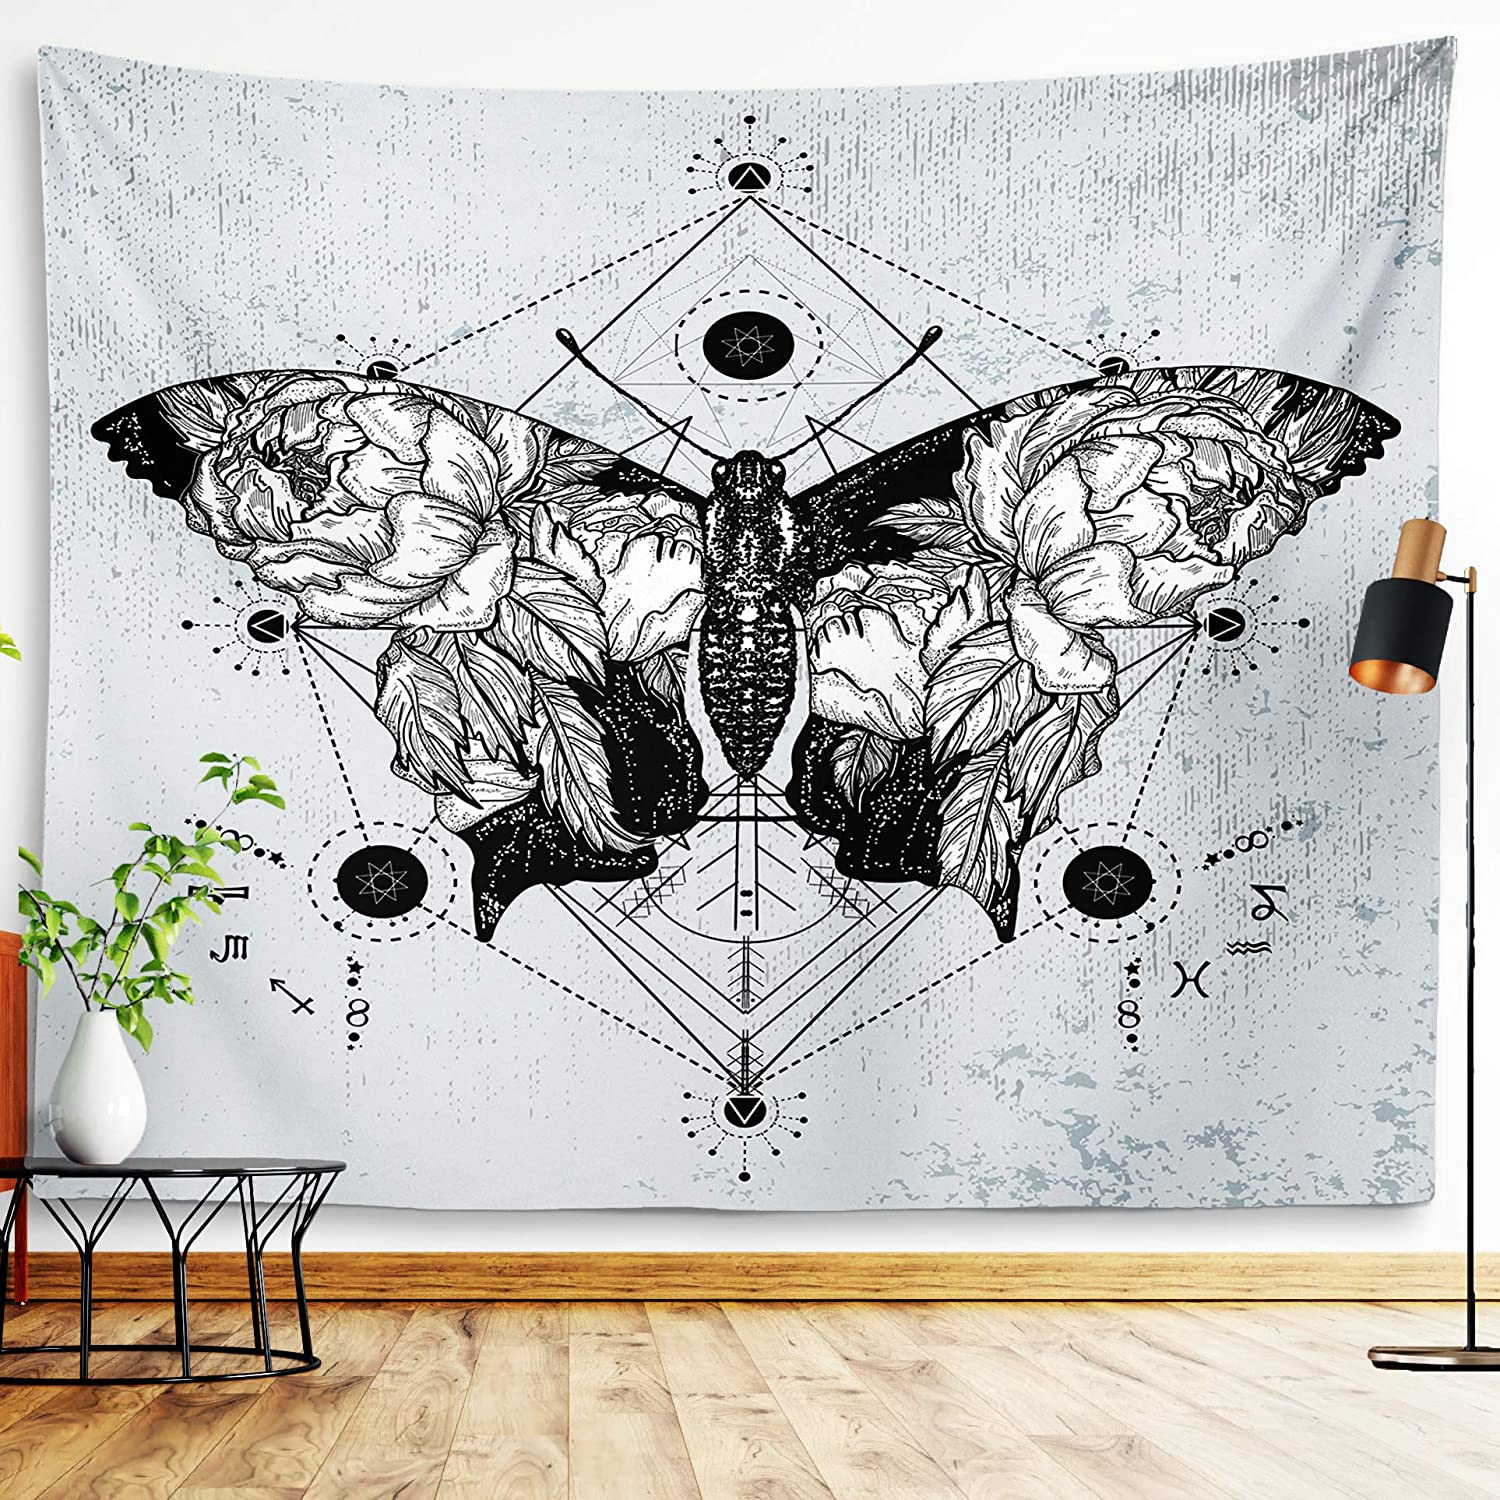 """Butterfly Tapestry Insects And Moths Wall Hanging Black And White Gothic Biology Entomology Wall Decor Grunge Moth Tattoo Wiccan Dragonfly Beetle Spider Witchy Tarot Bohemian Goth Tapestry For Living Room Bedroom College Dorm Room (Butterfly, 51""""59"""")"""